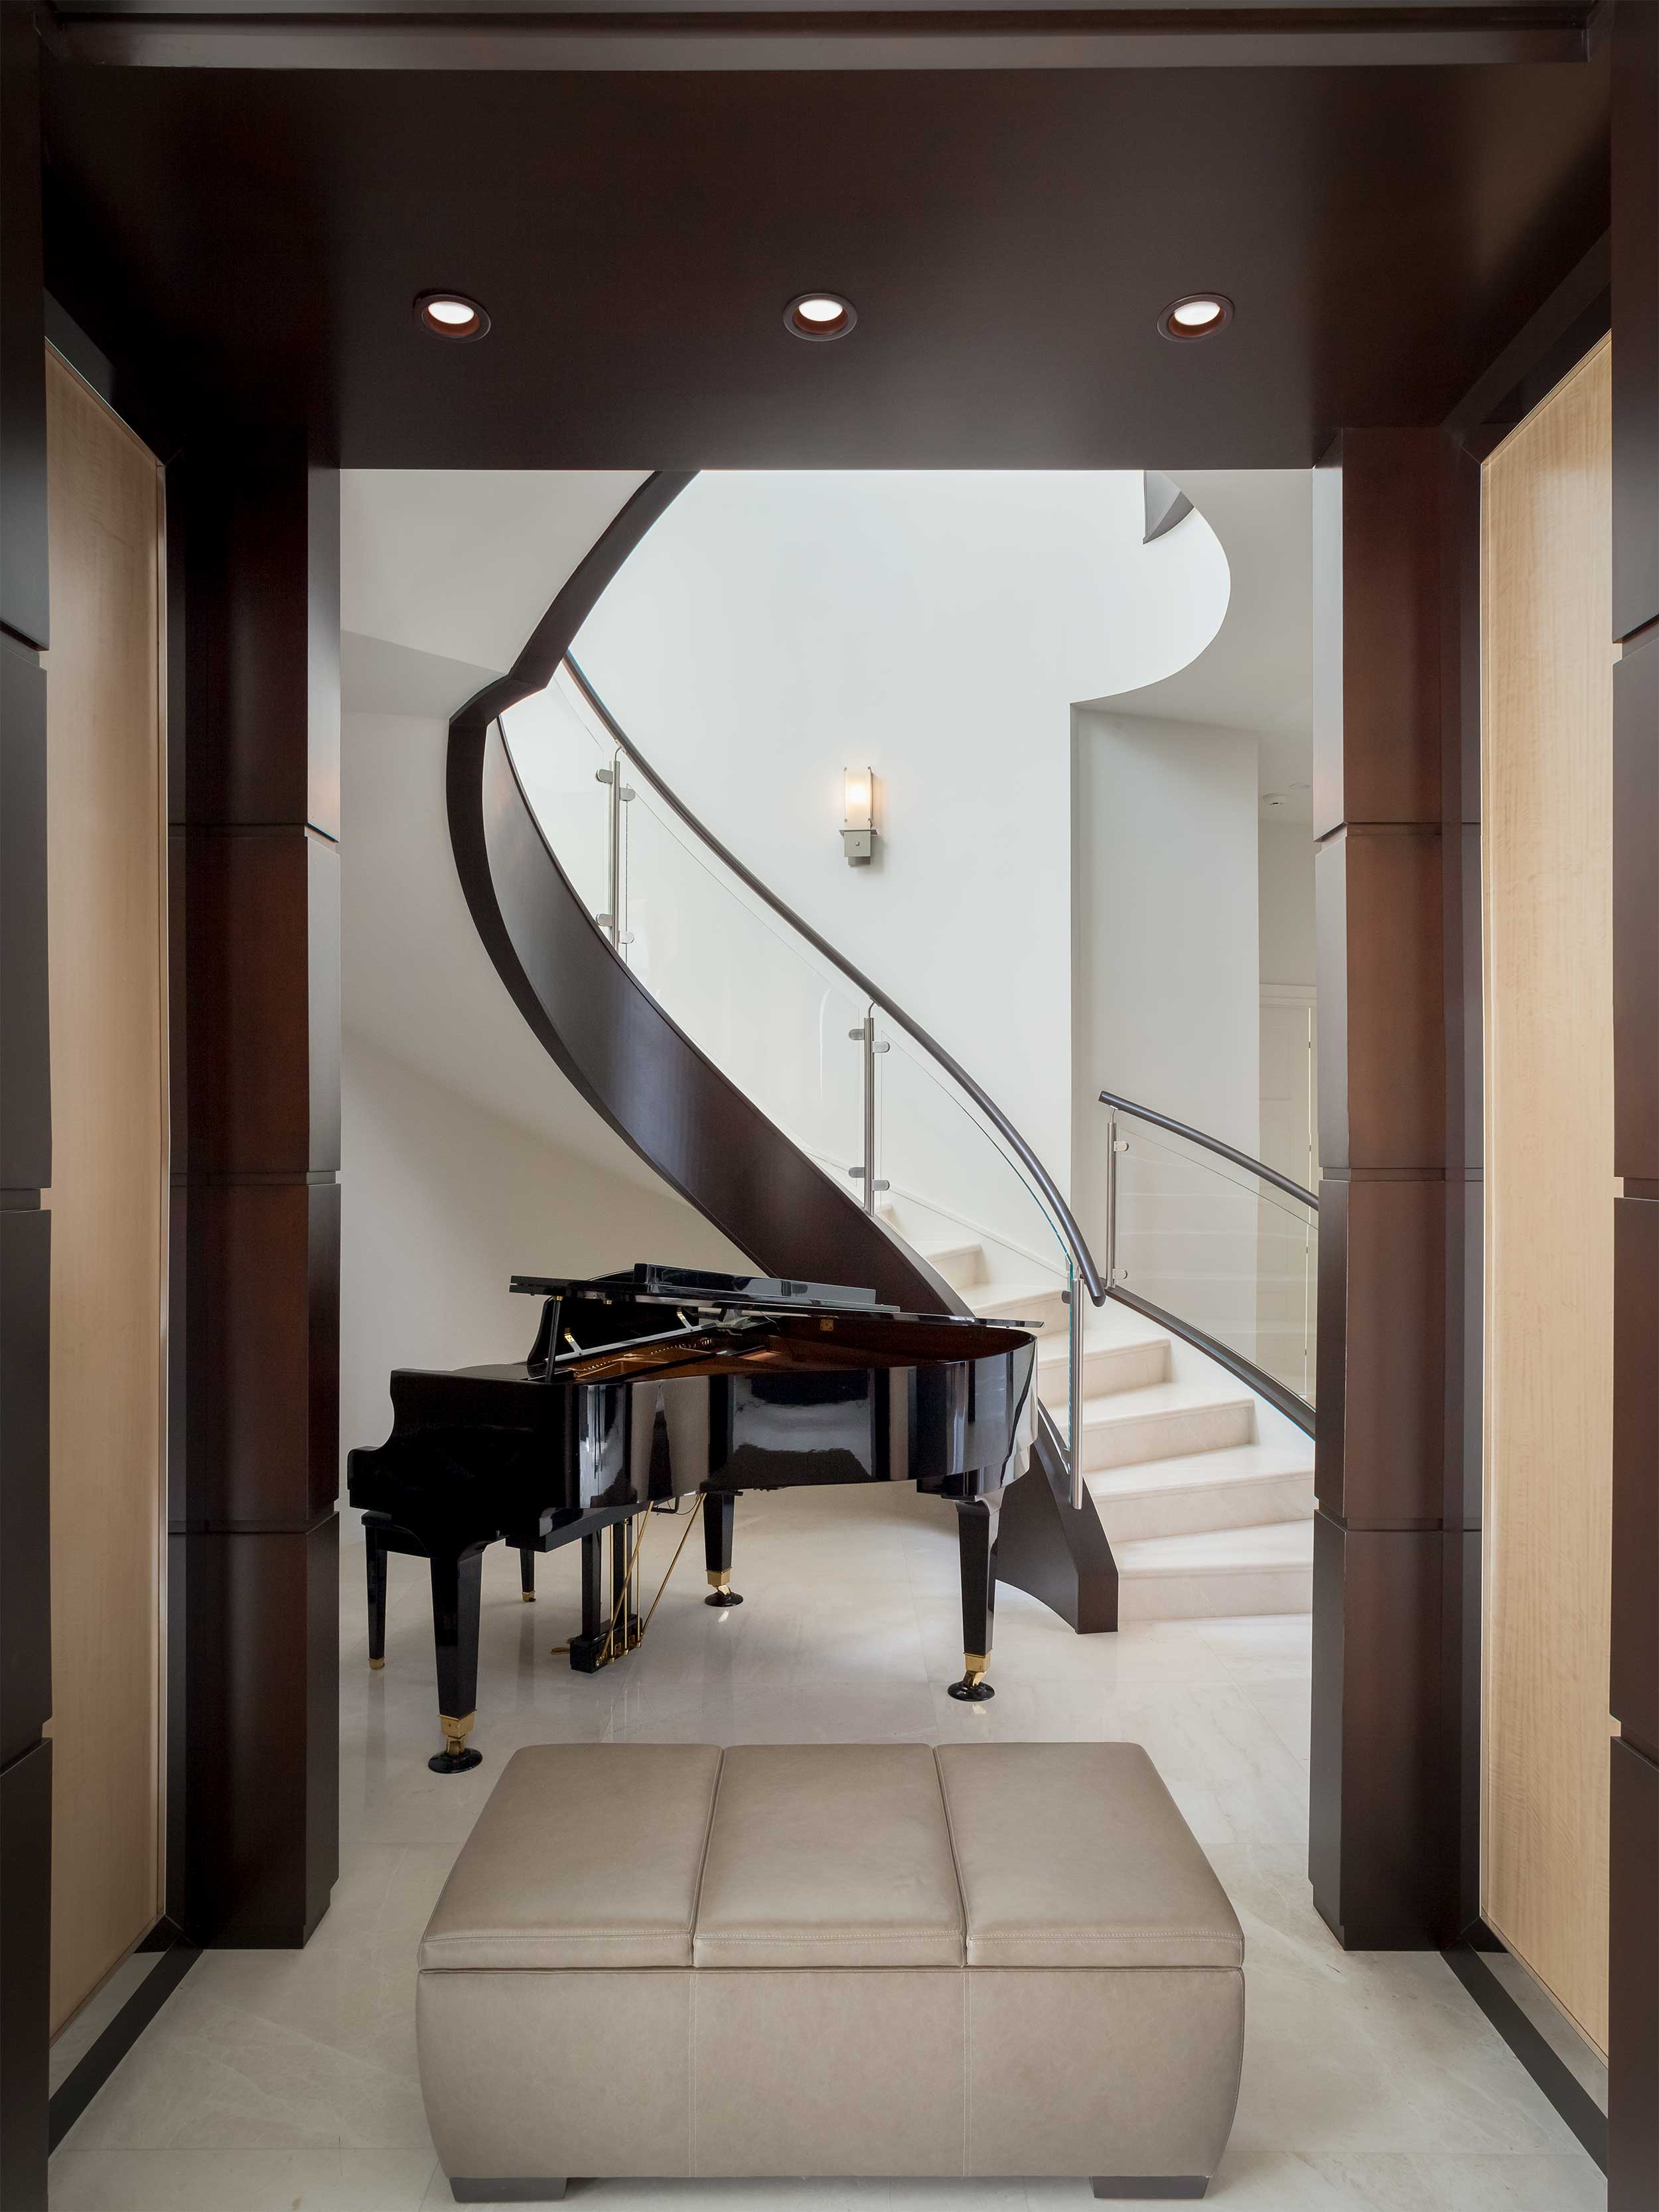 Piano and spiral staircase in Residential Interior Design Project in Jupiter, FL